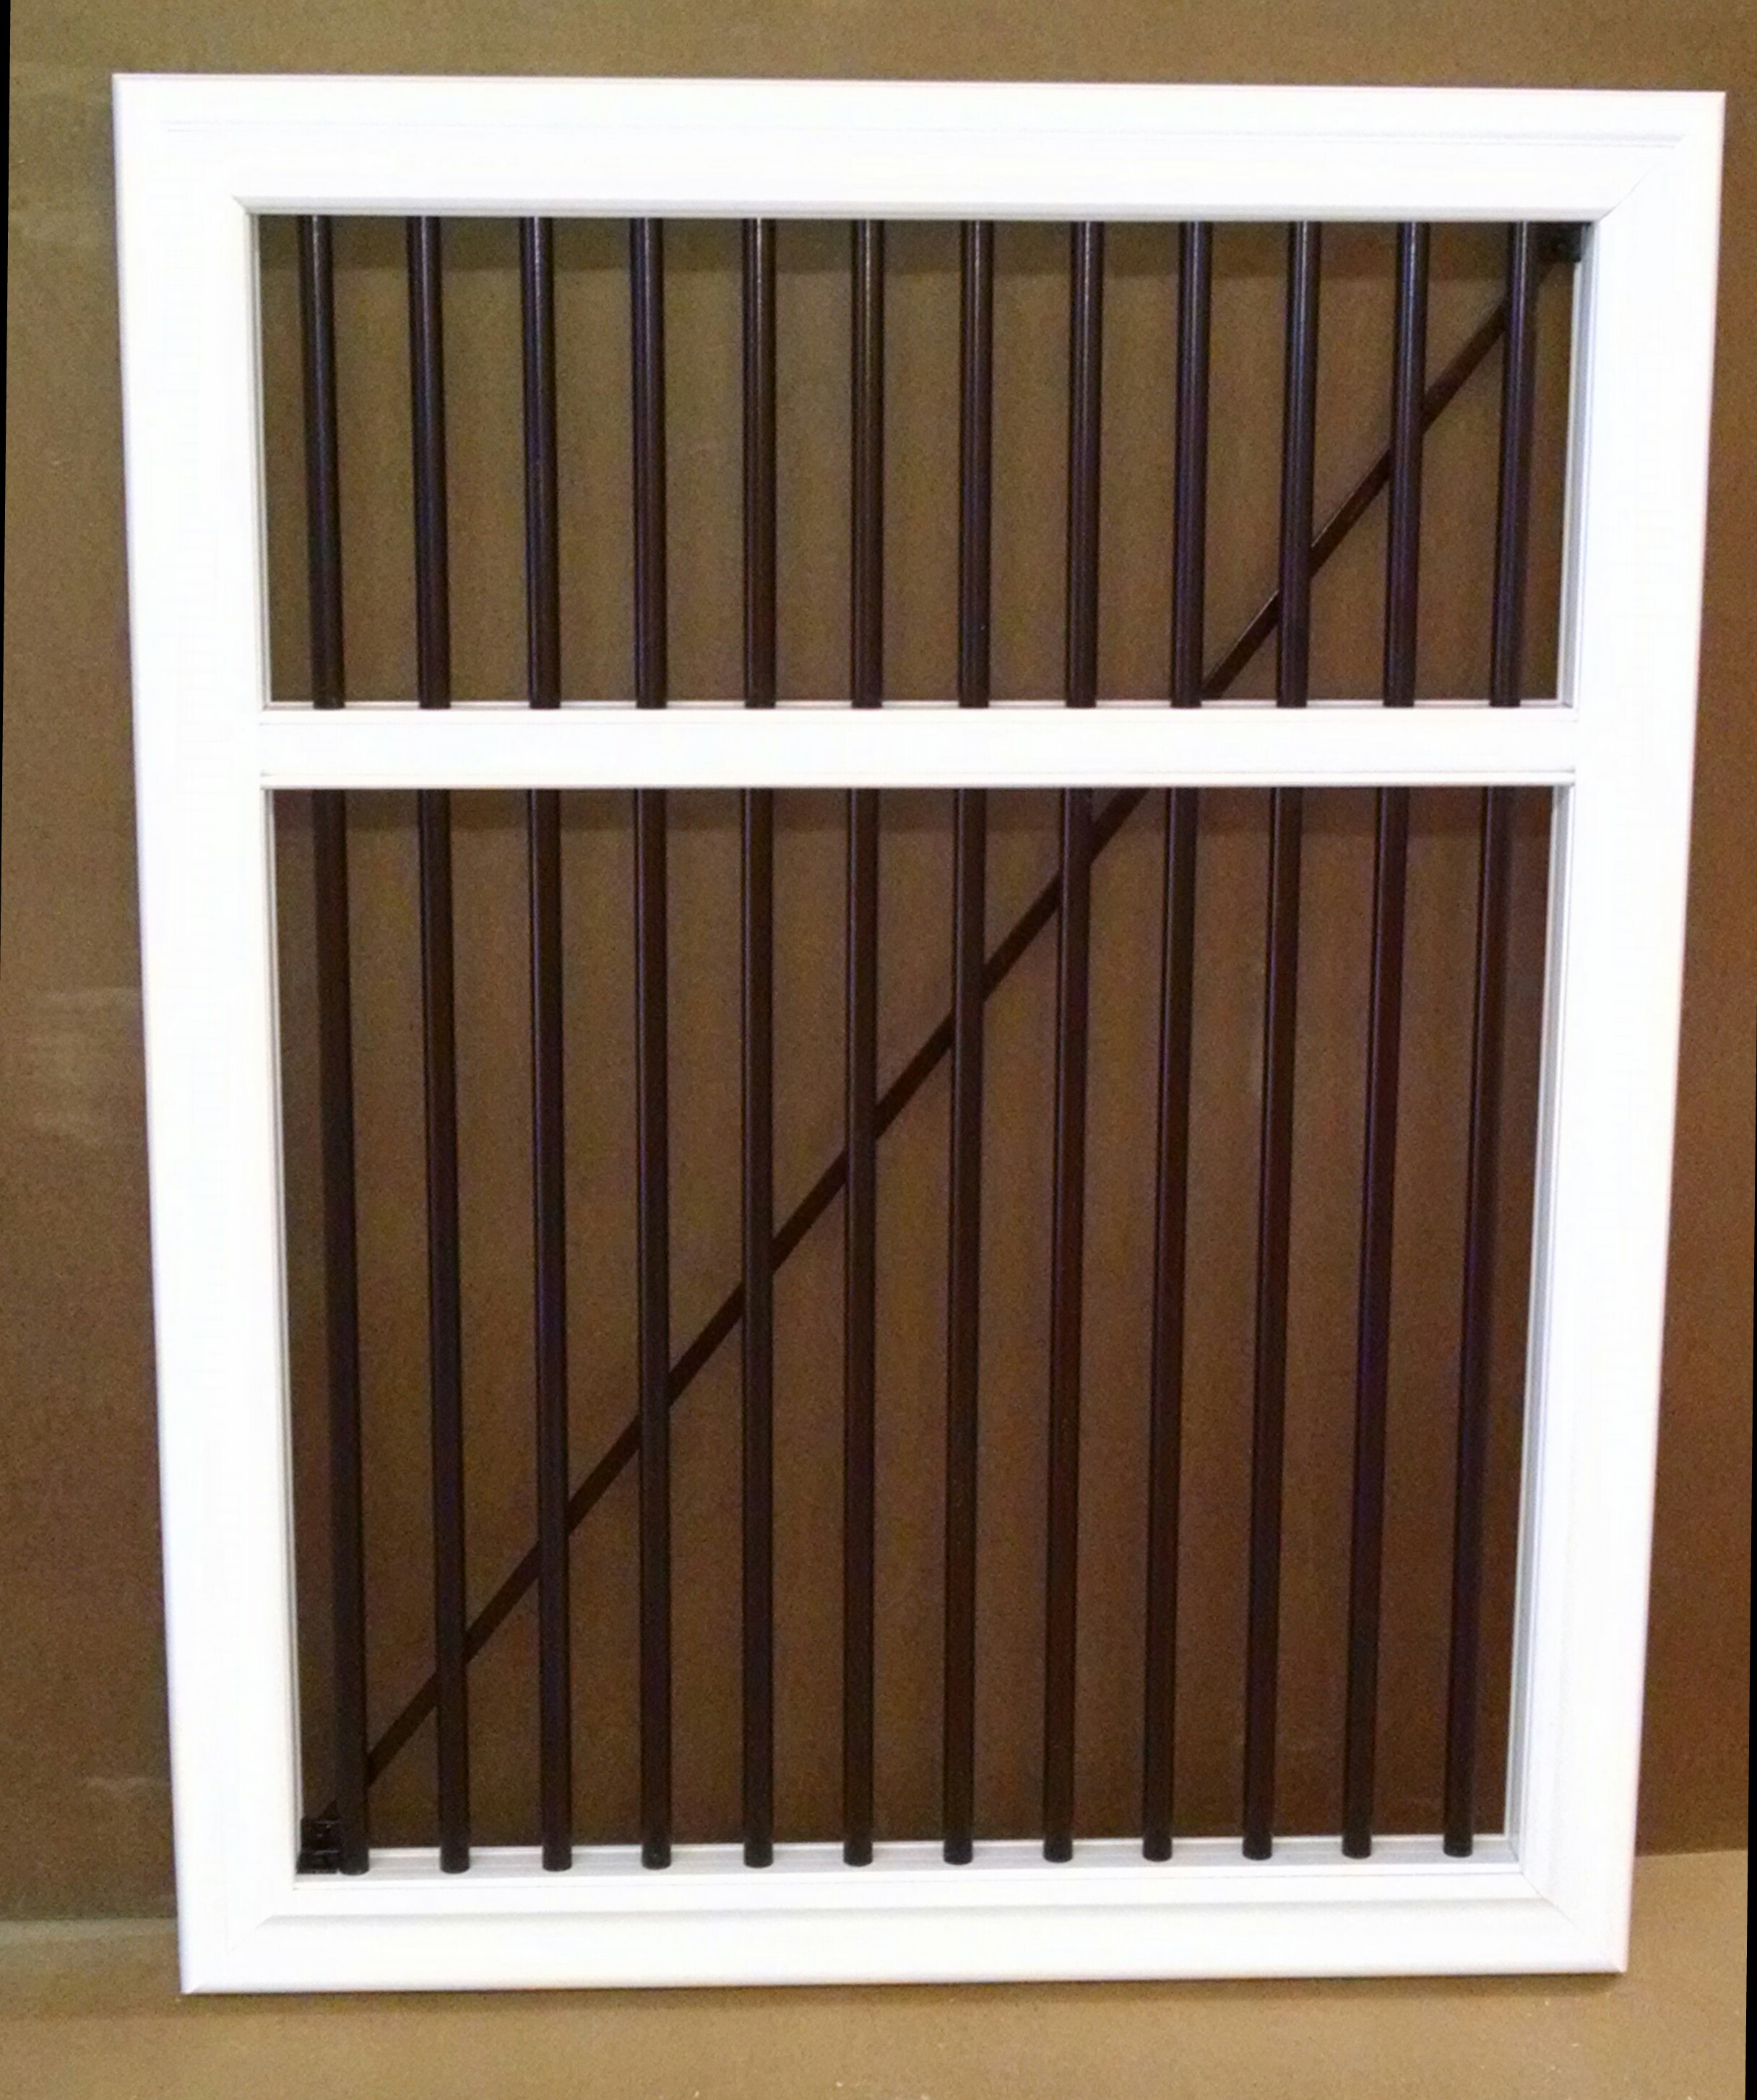 TimberTech RadianceRail Gate 46in tall with Mid-rail, black round balusters at a closer spacing.